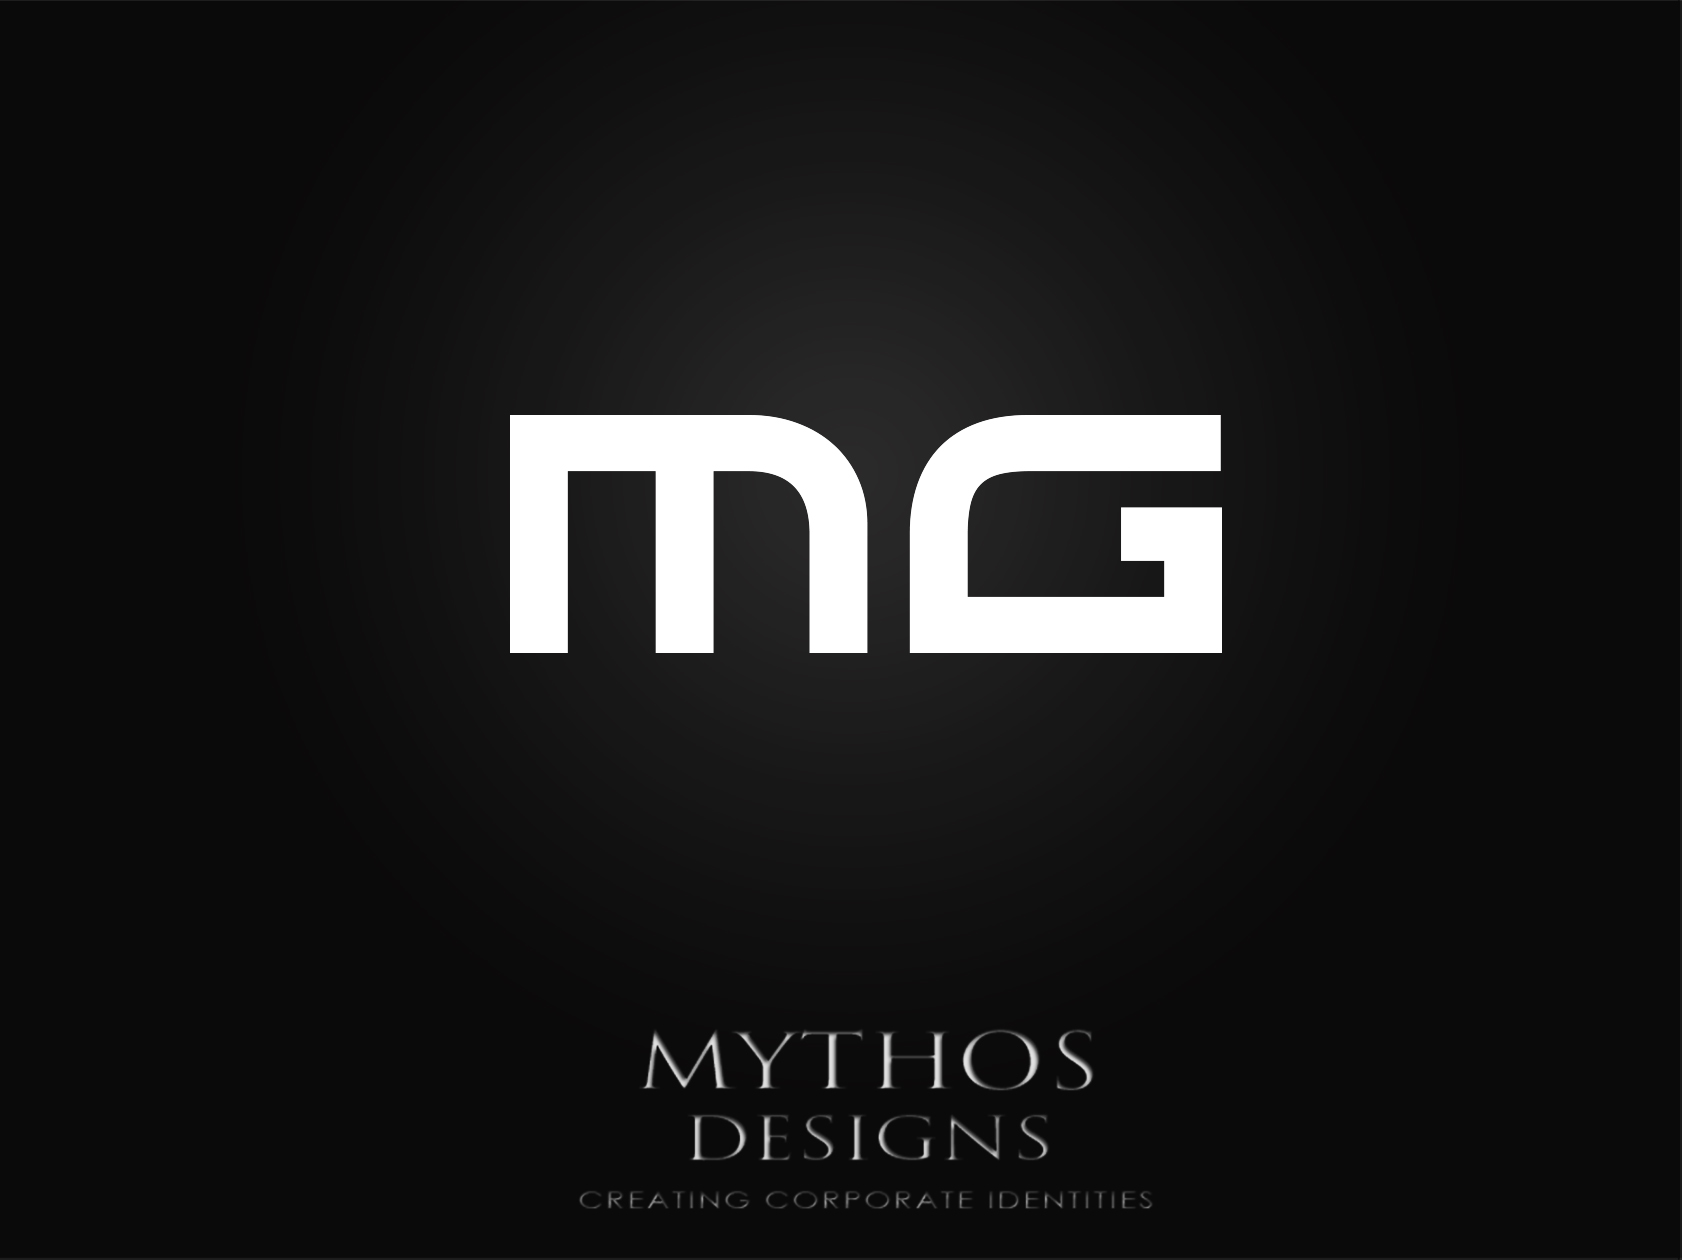 Custom Design by Mythos Designs - Entry No. 27 in the Custom Design Contest Imaginative Custom Design for MG.